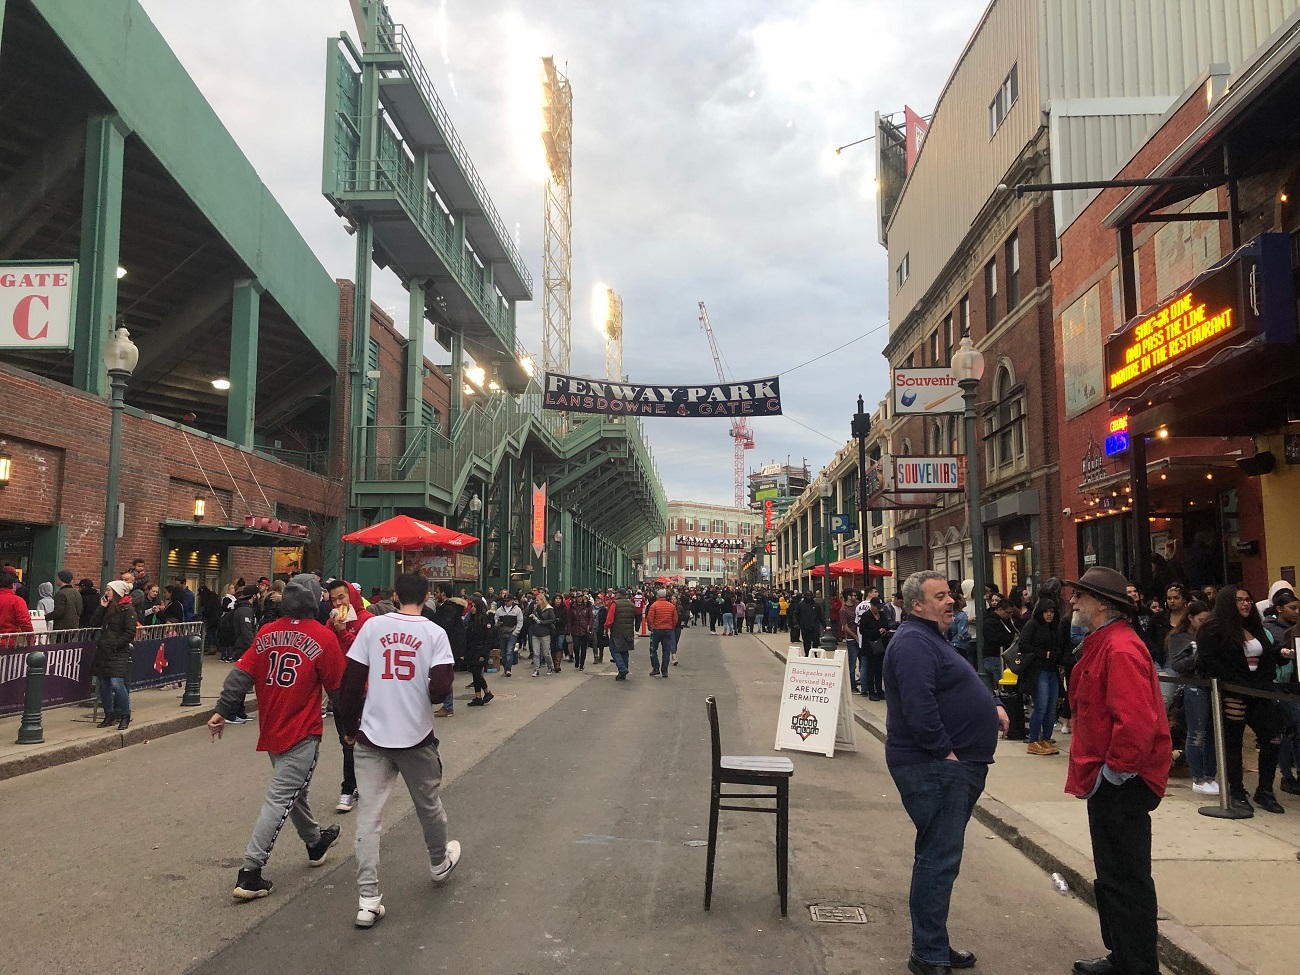 Behind Fenway Park on Landsdowne Street